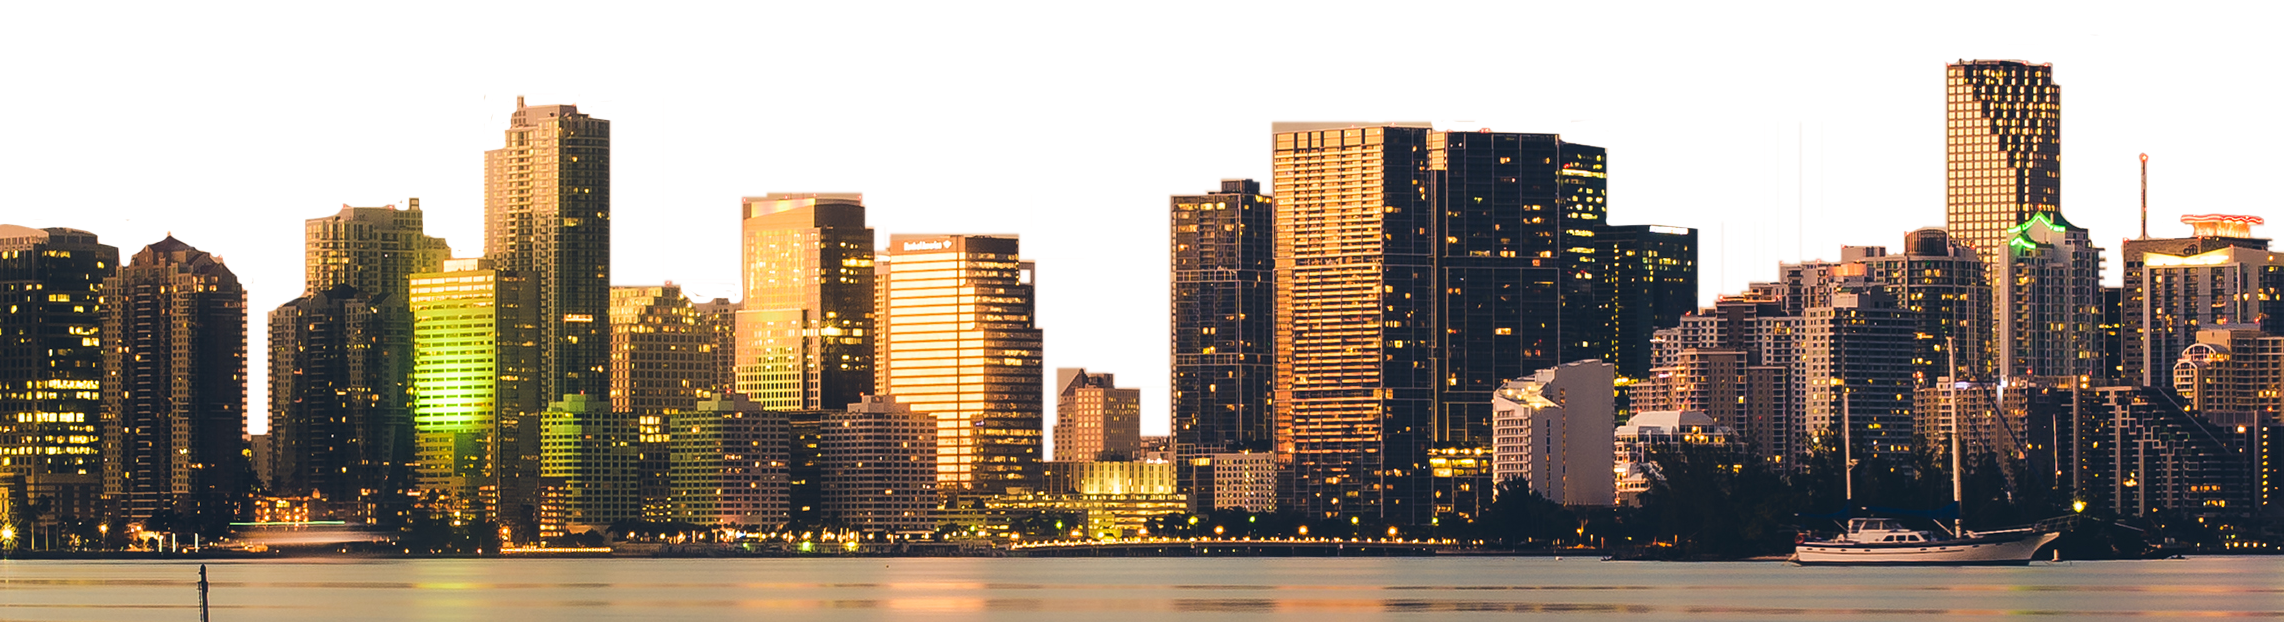 Download City Building PNG.